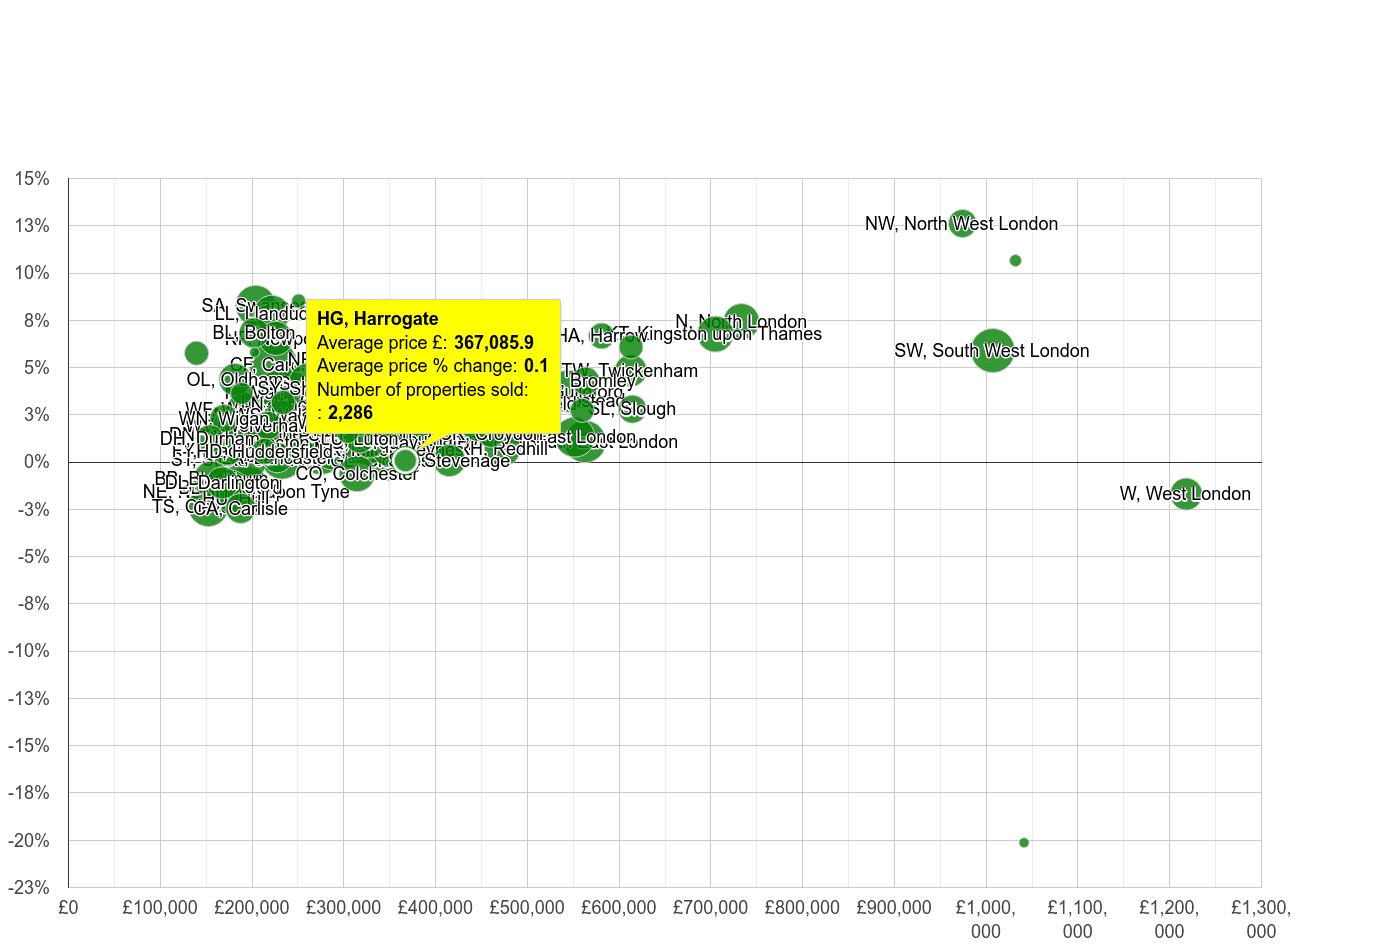 Harrogate house prices compared to other areas